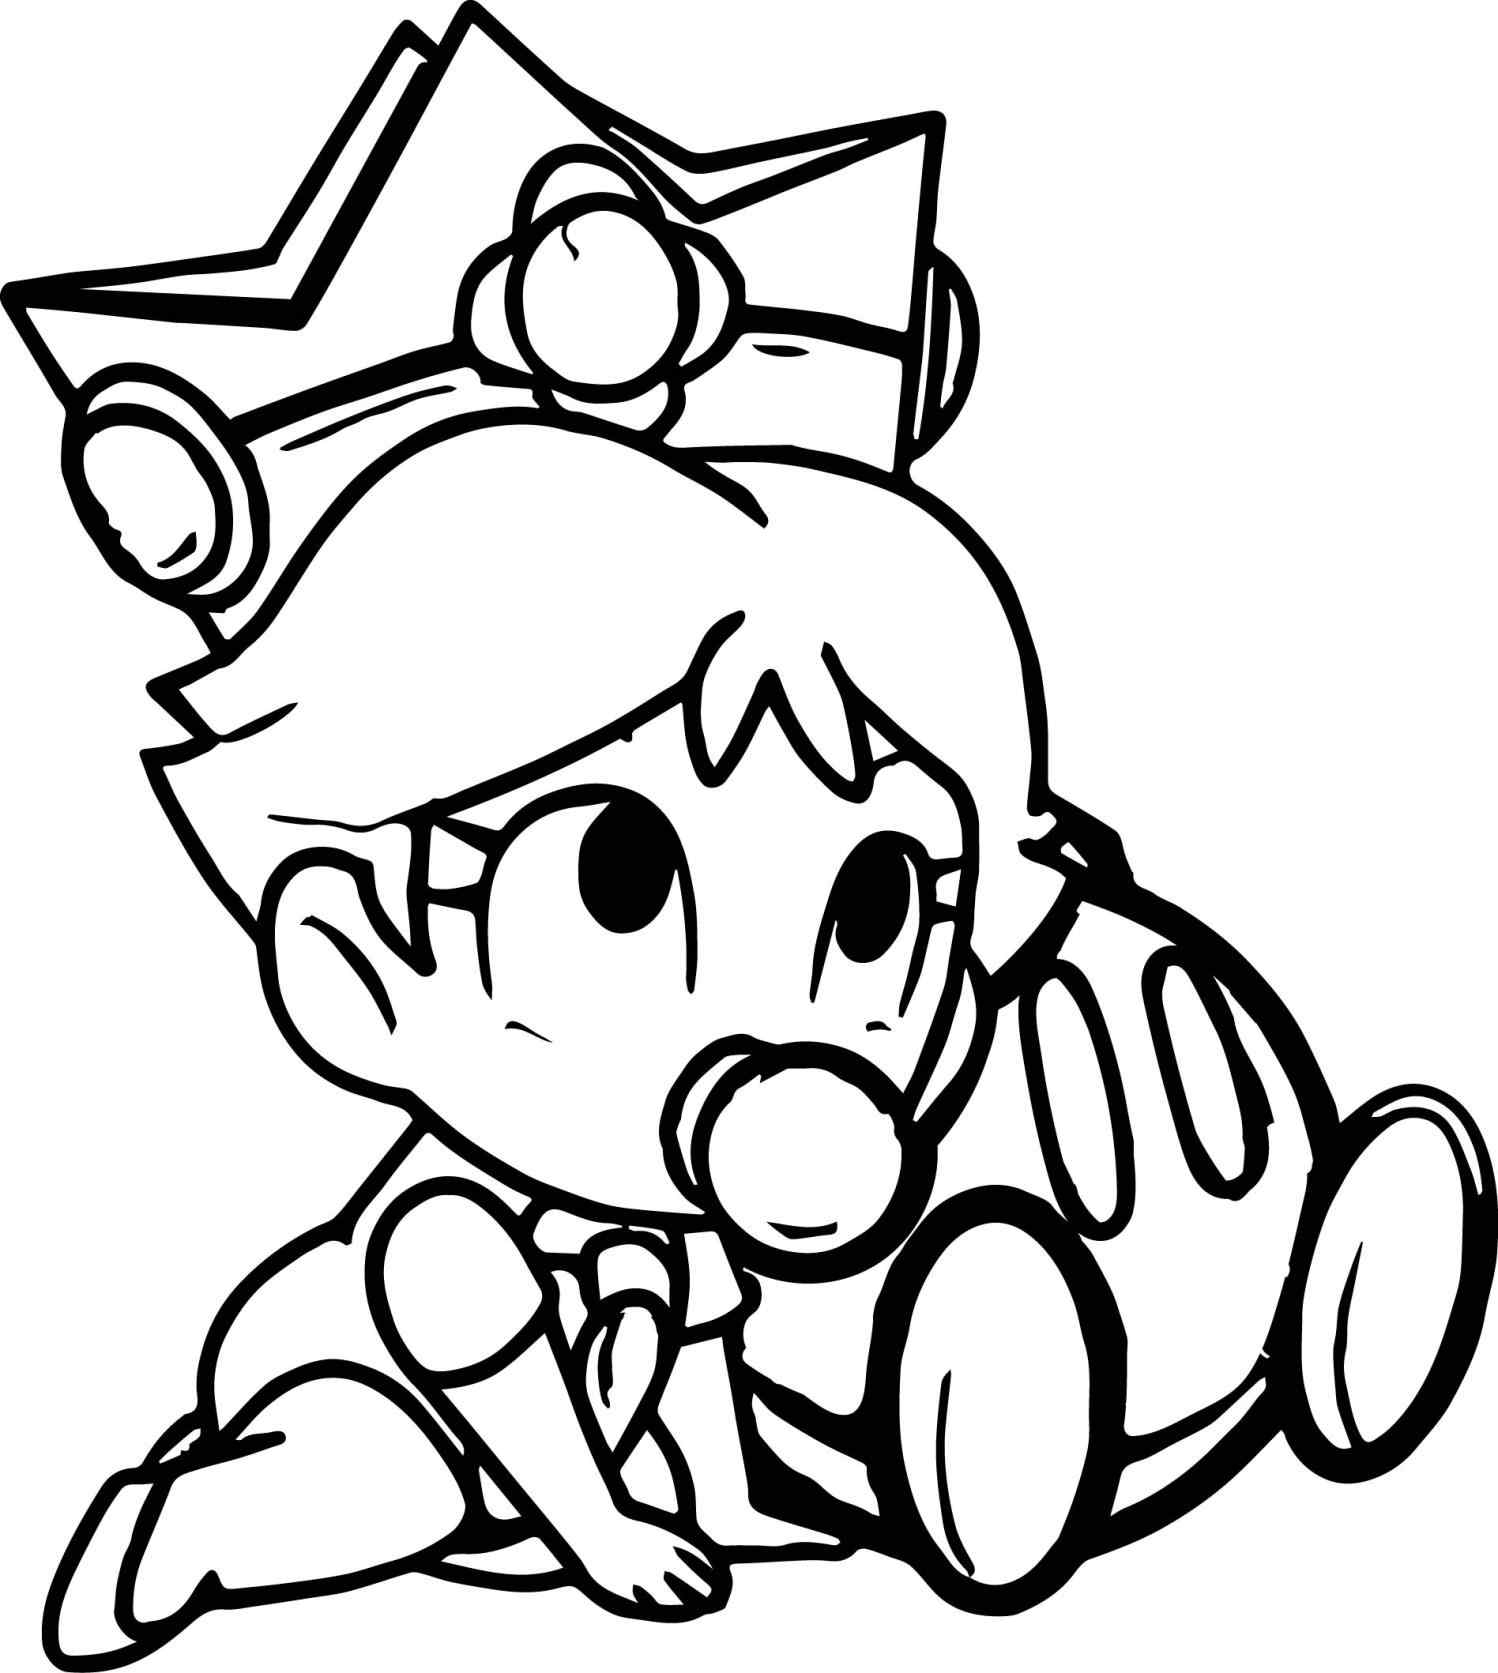 1498x1673 Baby Rosalina Coloring Page Online Coloring Printable